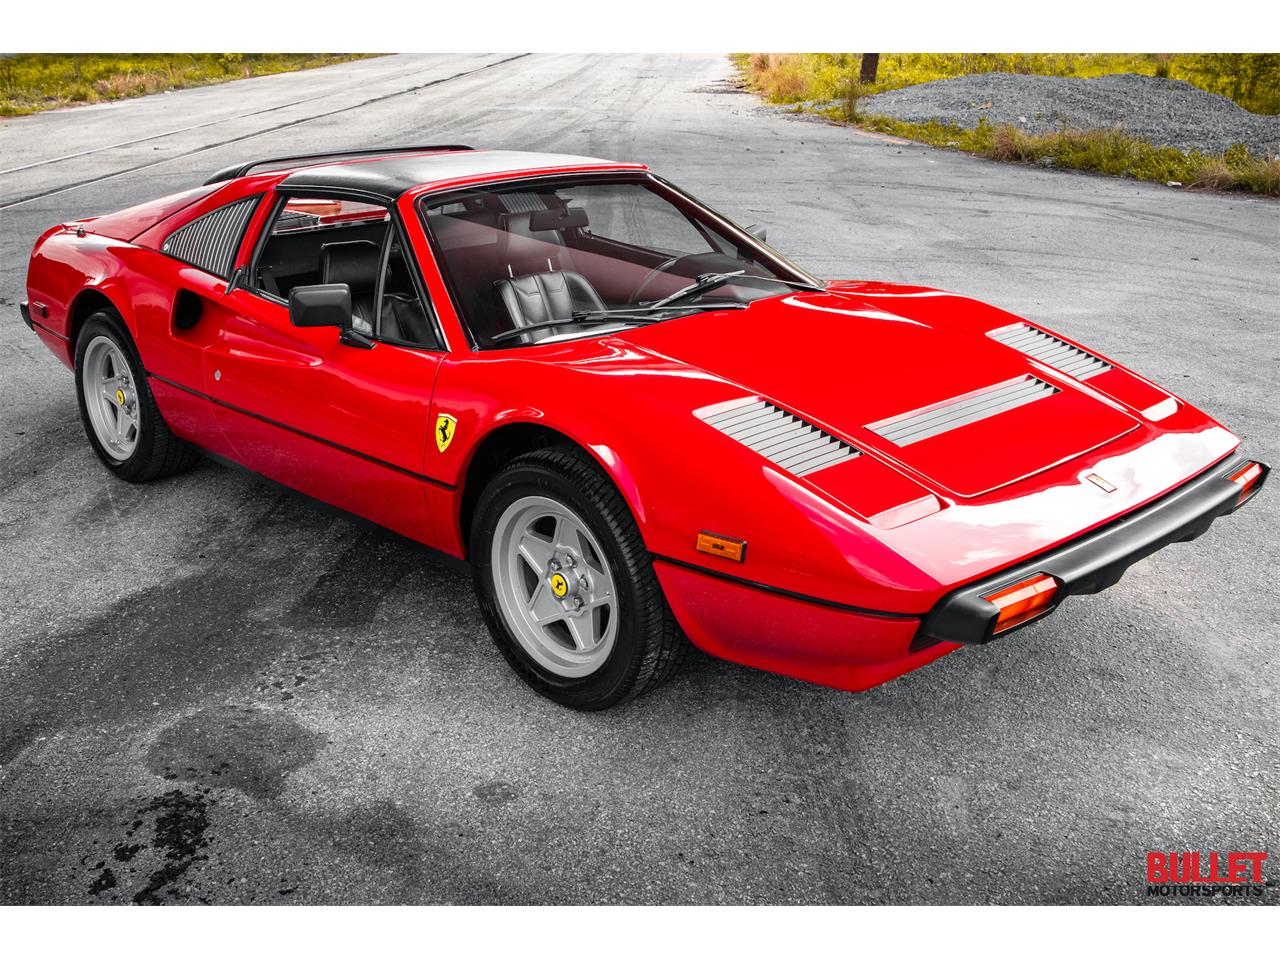 Large Picture of '85 Ferrari 308 GTS located in Florida - $60,000.00 Offered by Bullet Motorsports Inc - QJ3G